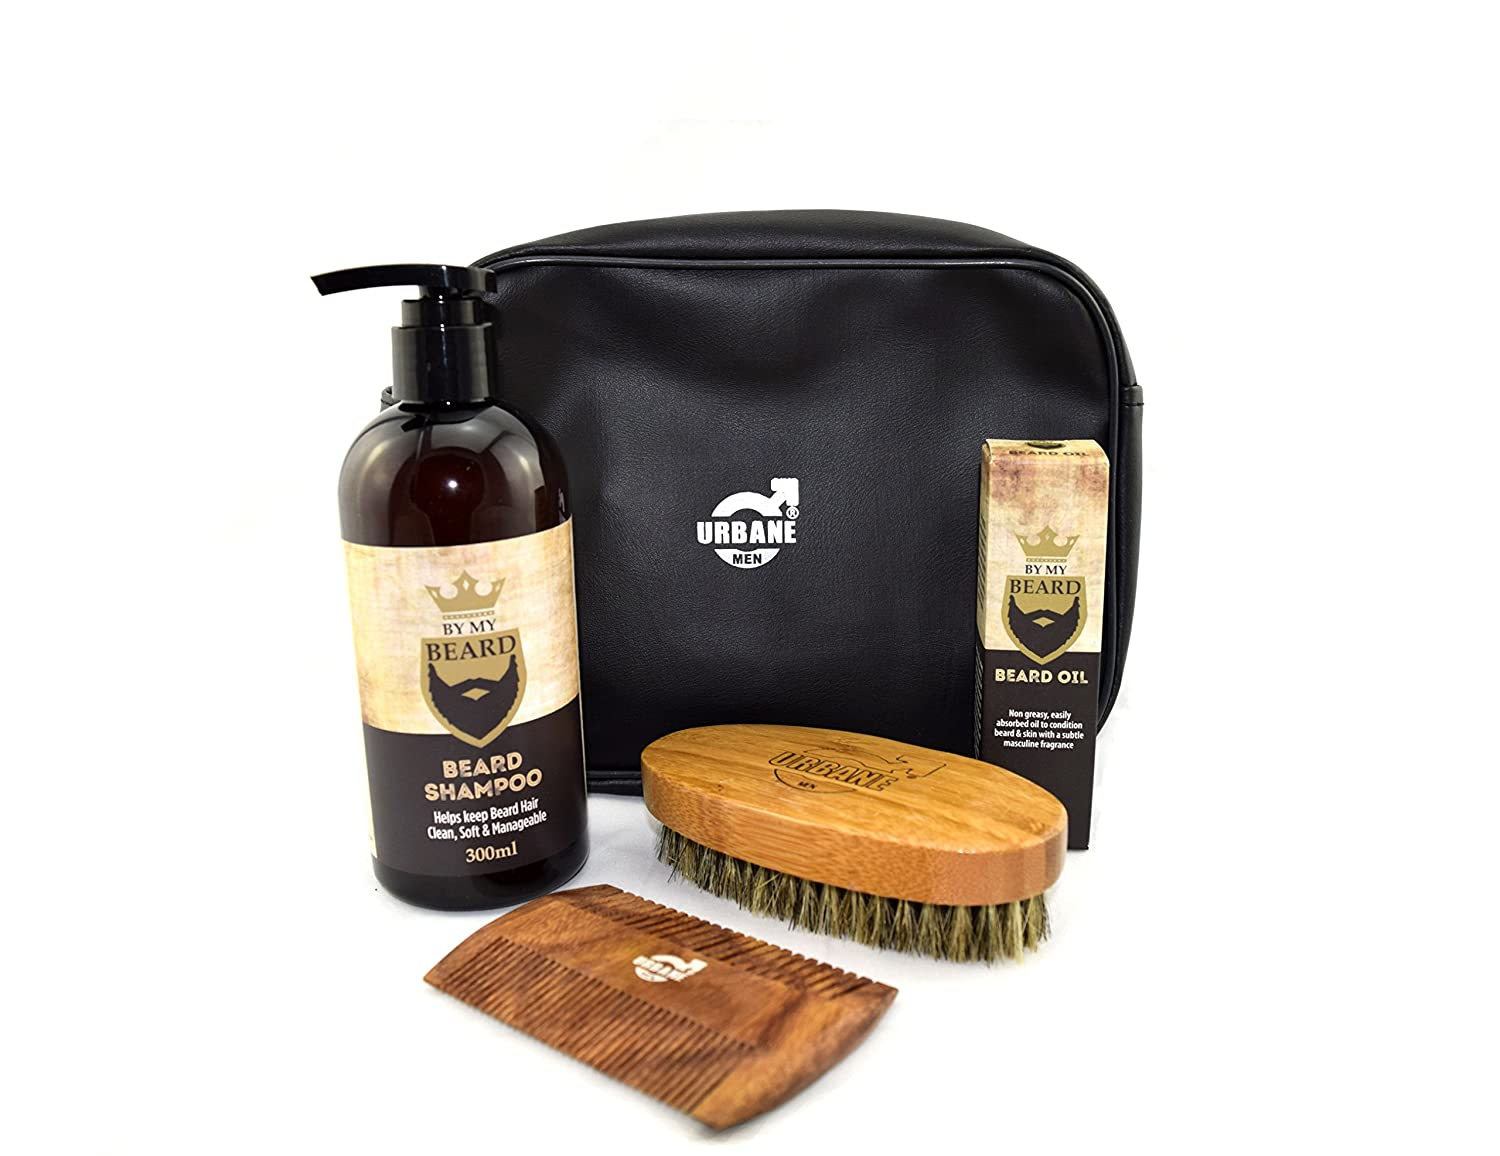 0a688215d03c Urbane Men Beard Care Grooming Kit with Wash Bag - Beard Shampoo, Oil,  Brush and Comb Gift Set